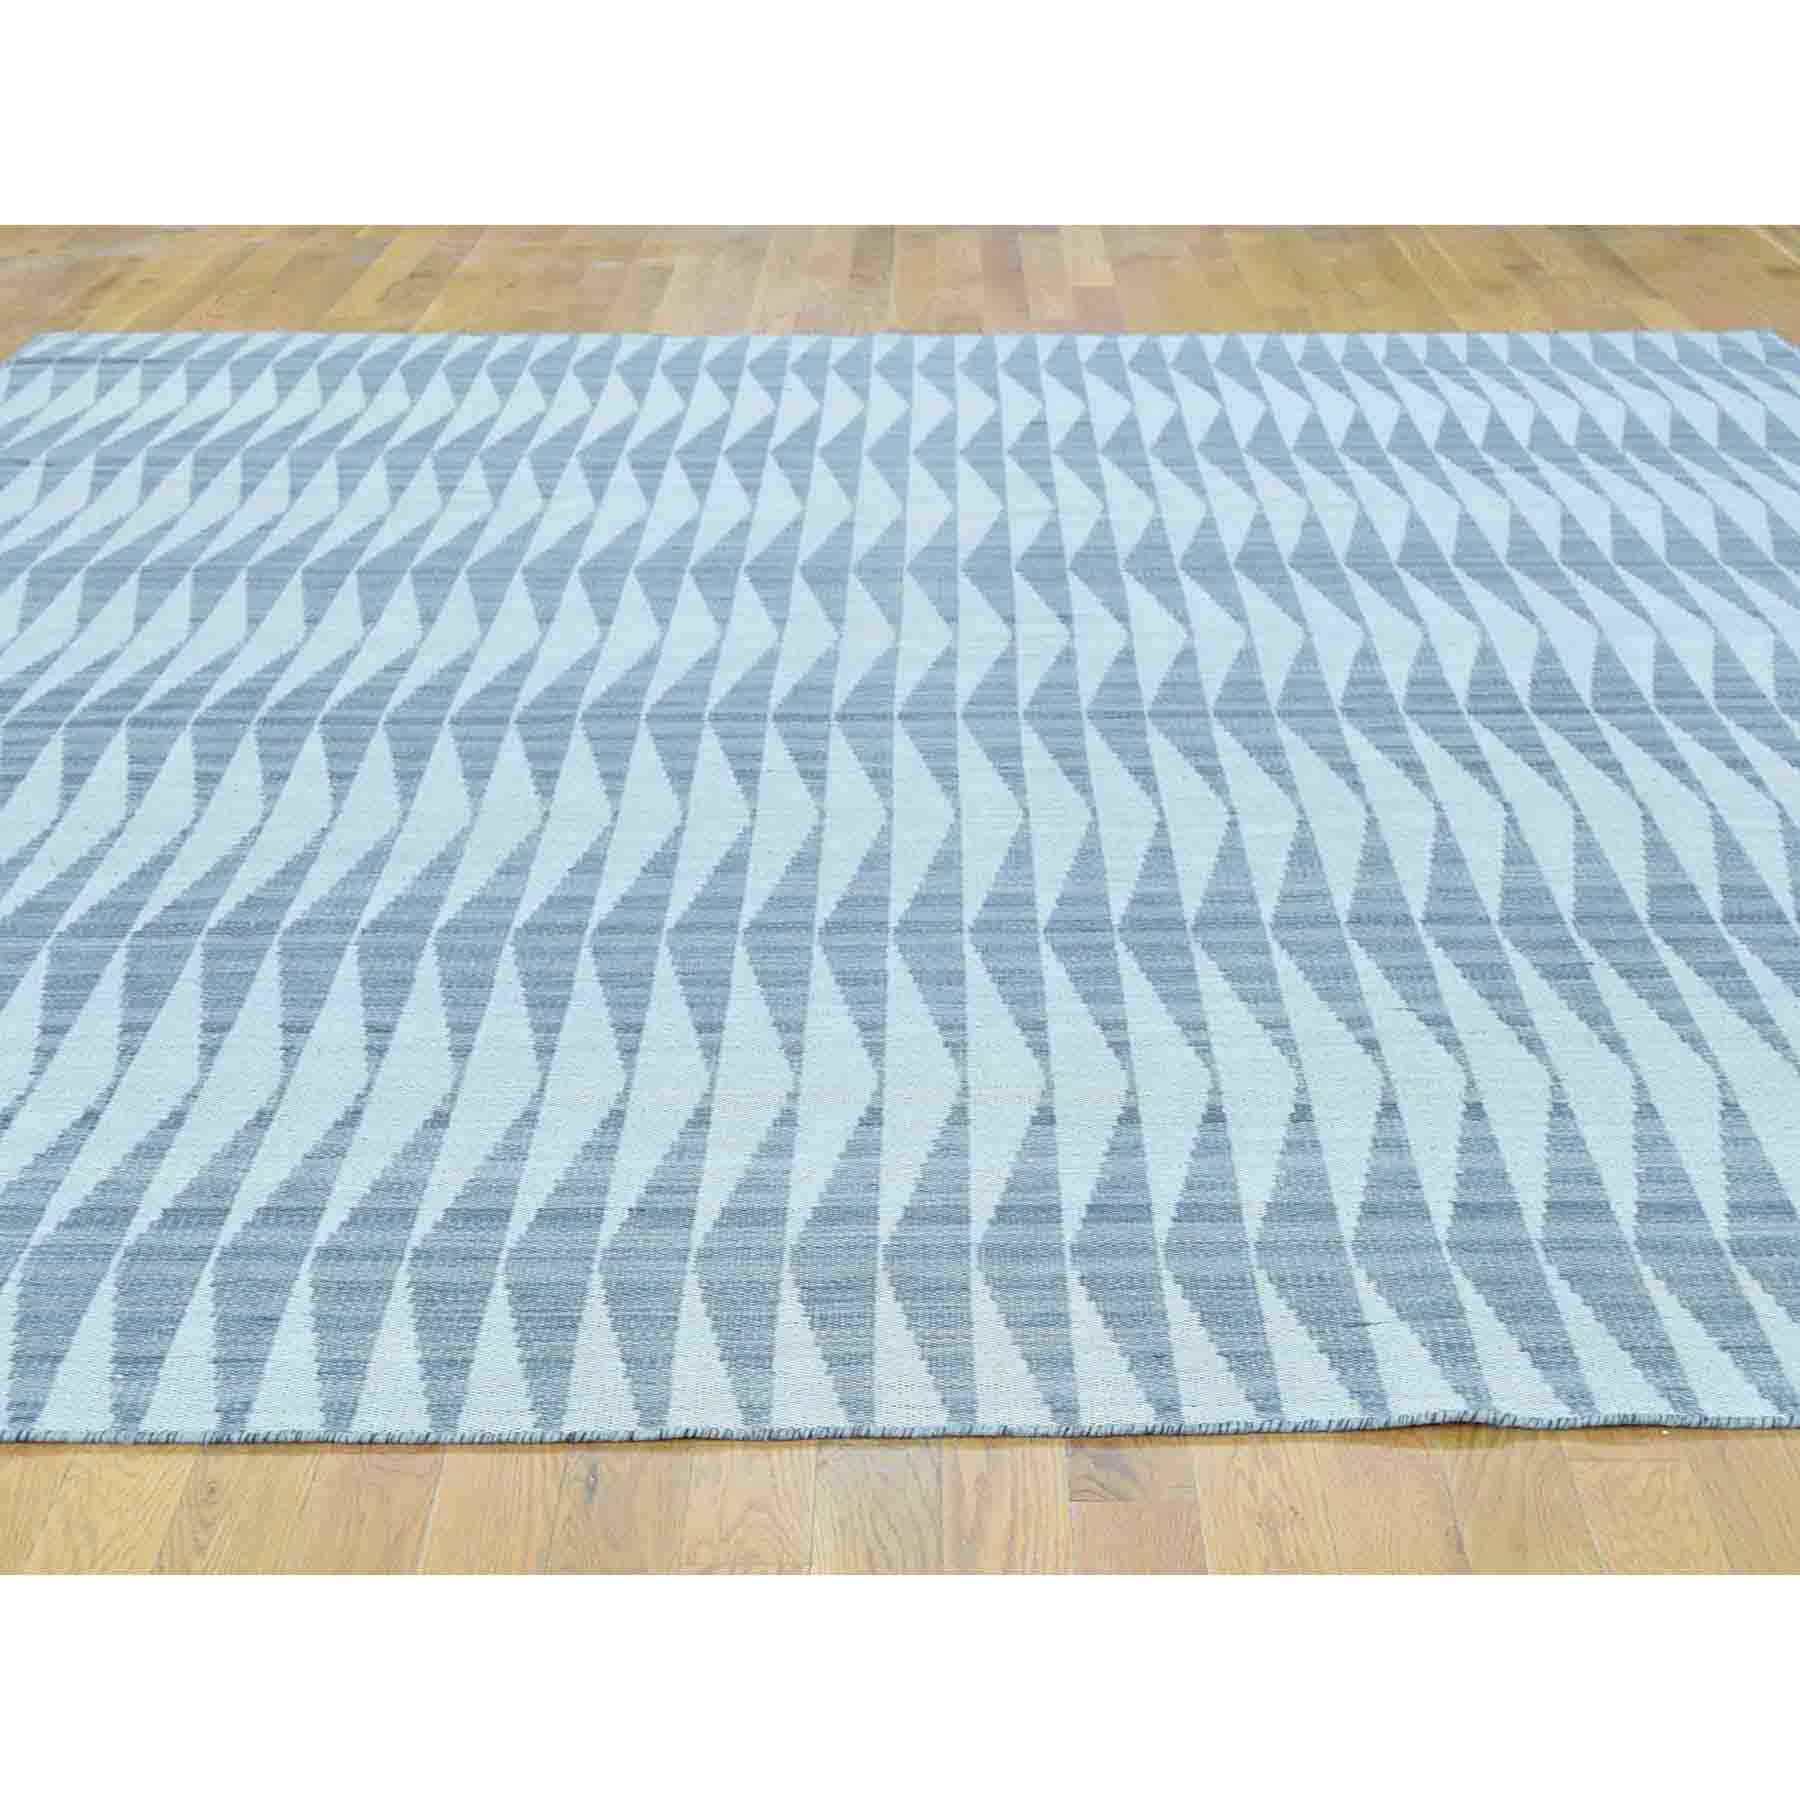 Flat-Weave-Hand-Woven-Rug-186405